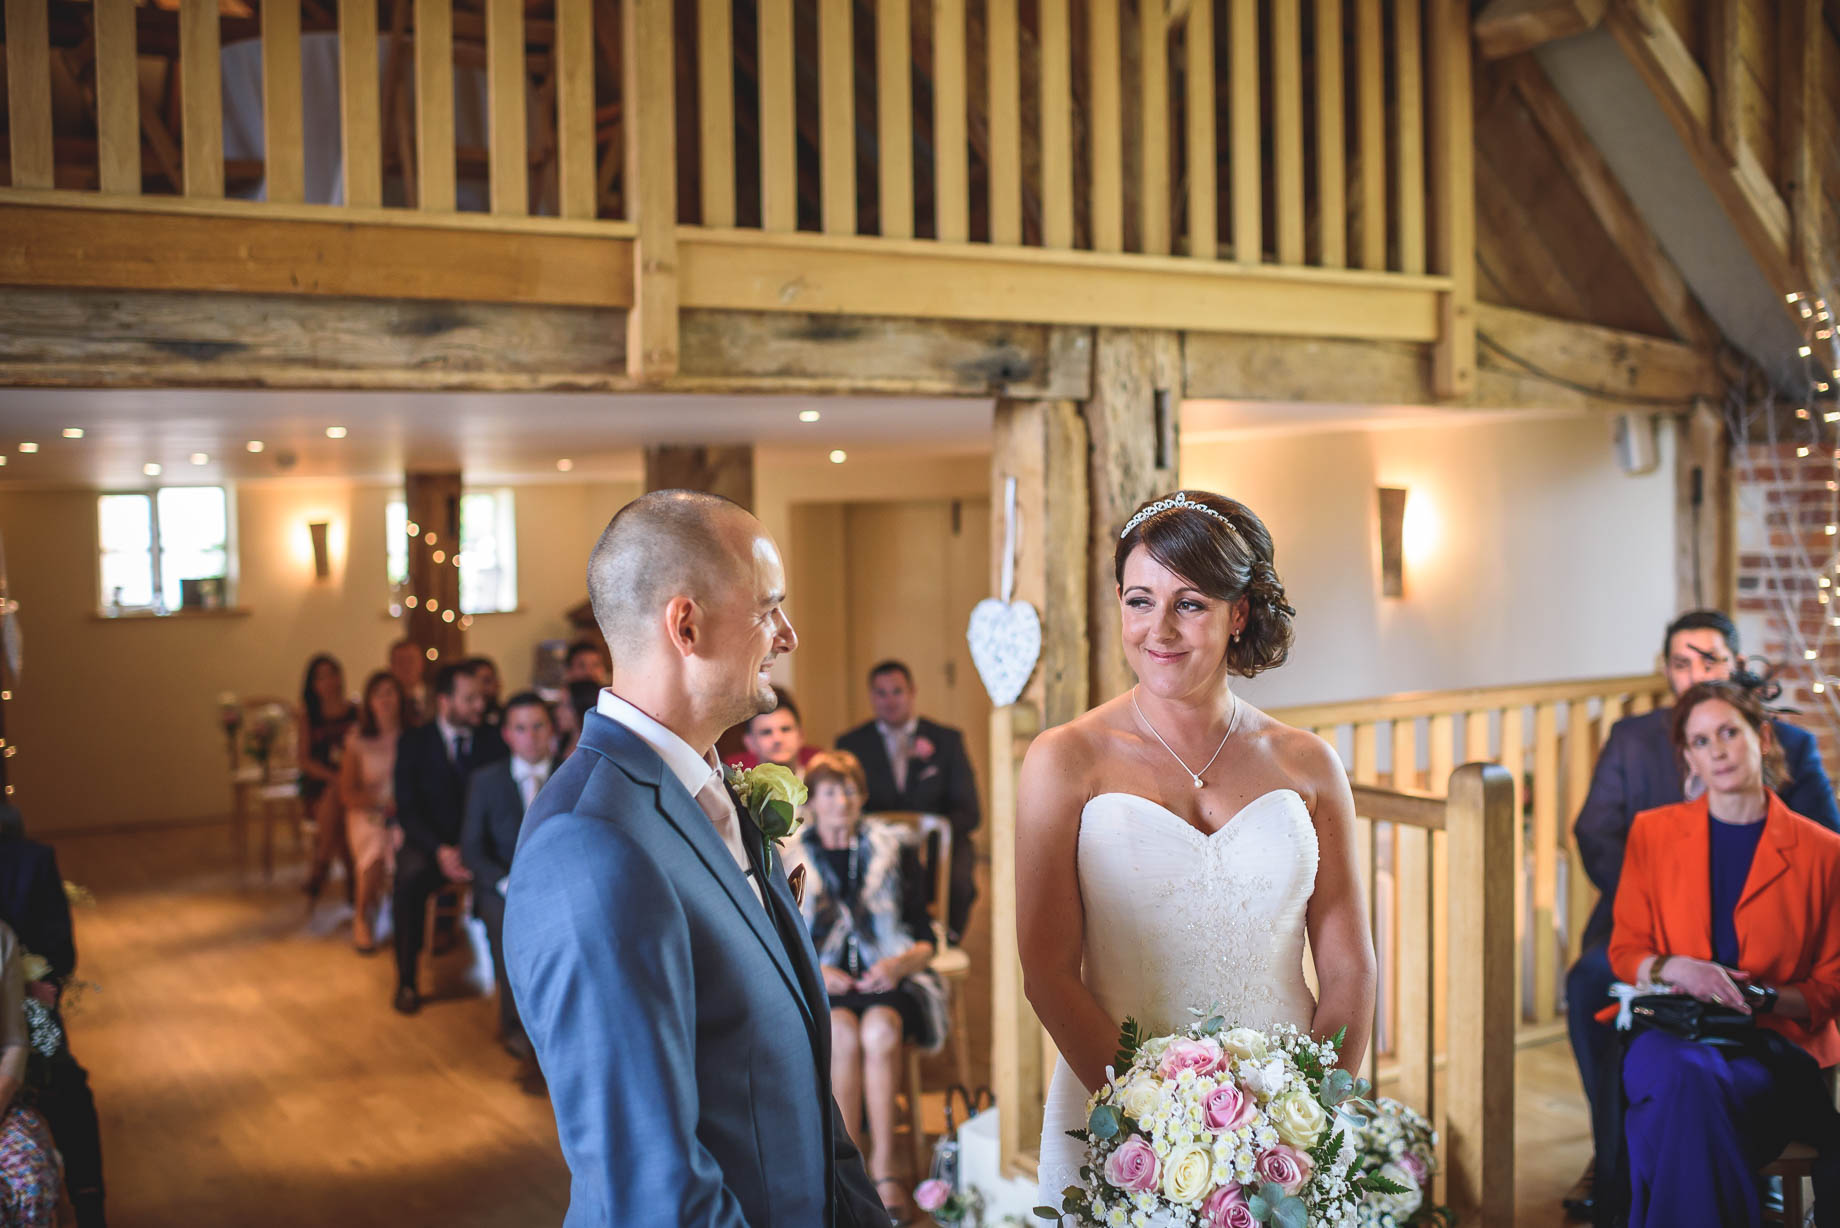 Bury Court Barn wedding photography - Guy Collier Photography - Karen and John (54 of 166)